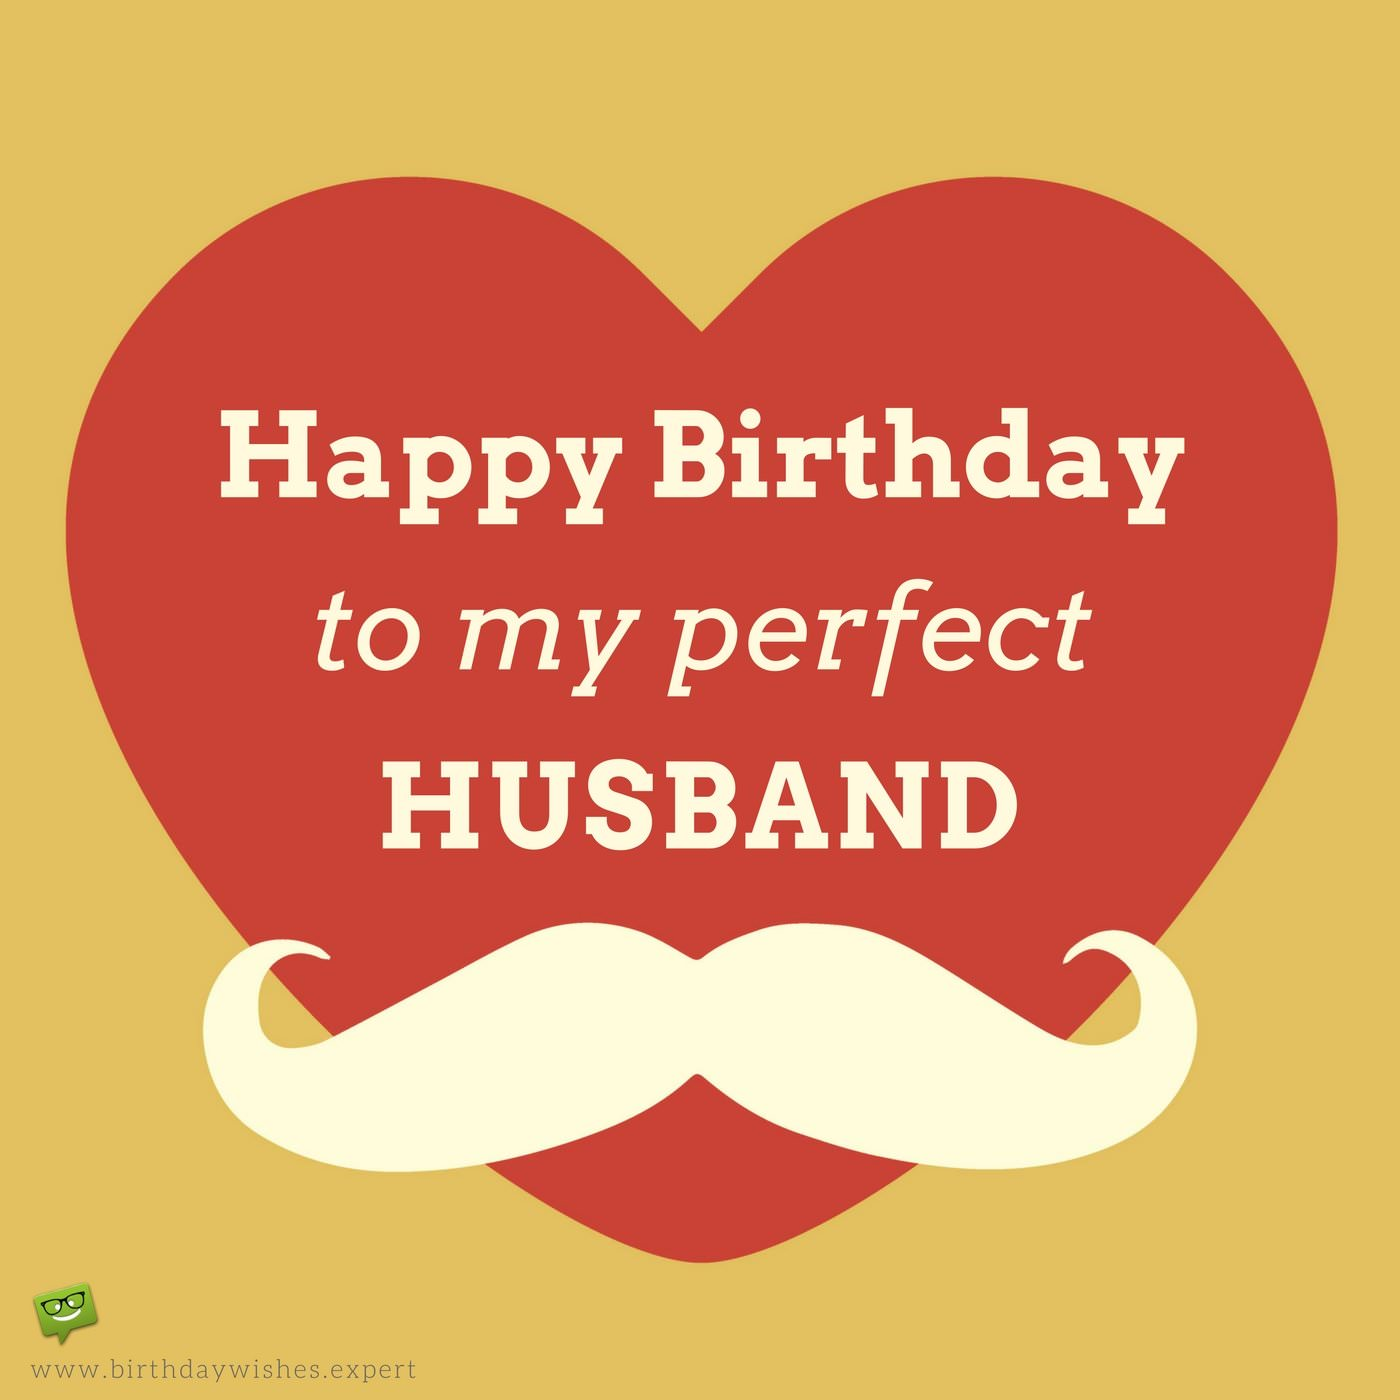 a birthday wish for a husband ; Cool-birthday-wish-for-husband